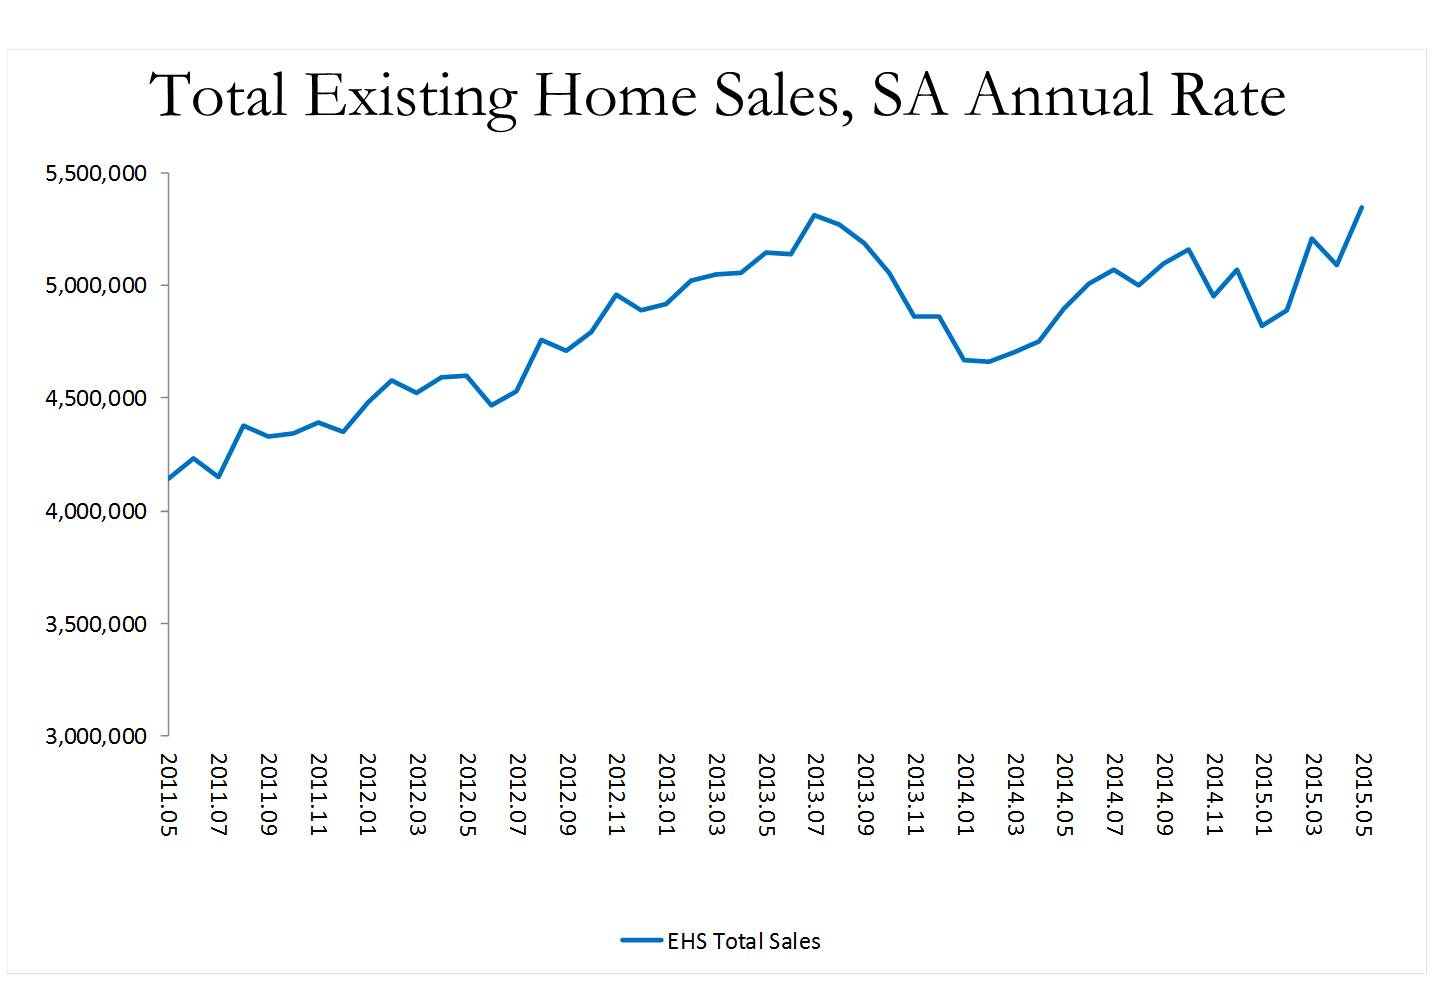 NRA Total Existing Home Sales